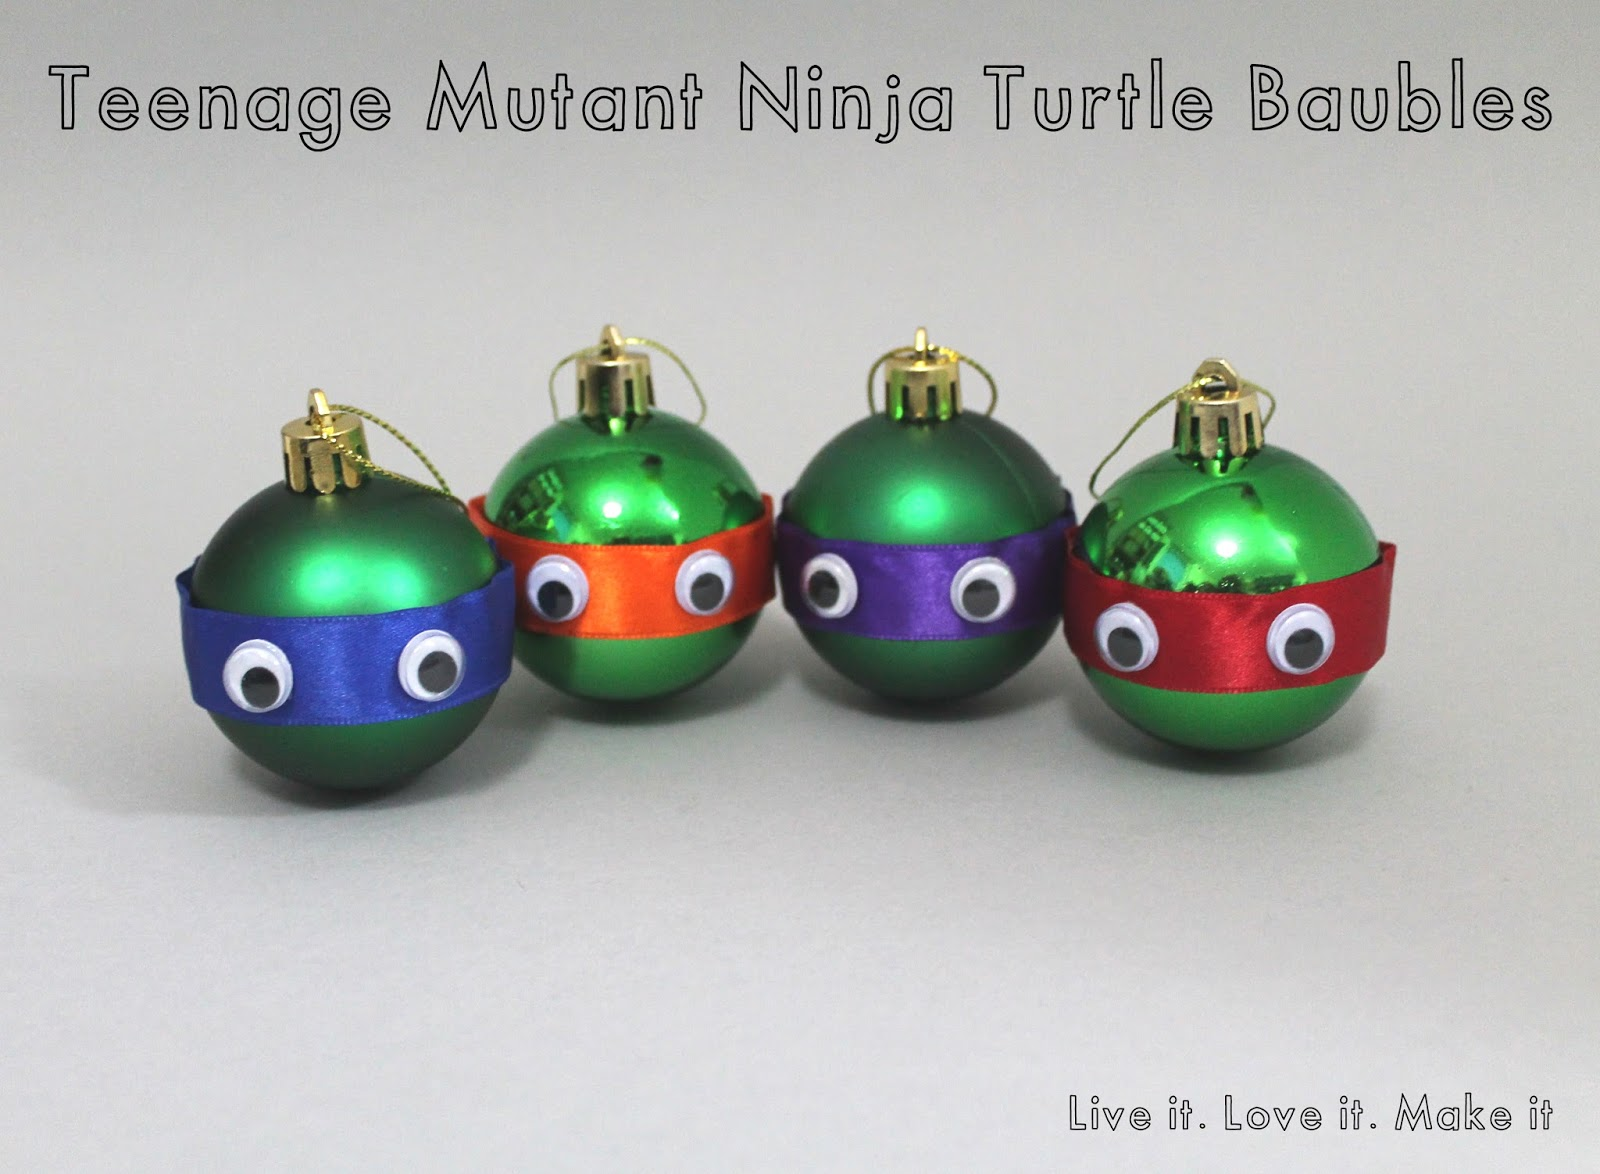 Live it . Love it . Make it.: Make it: Teenage Mutant Ninja Turtle ...